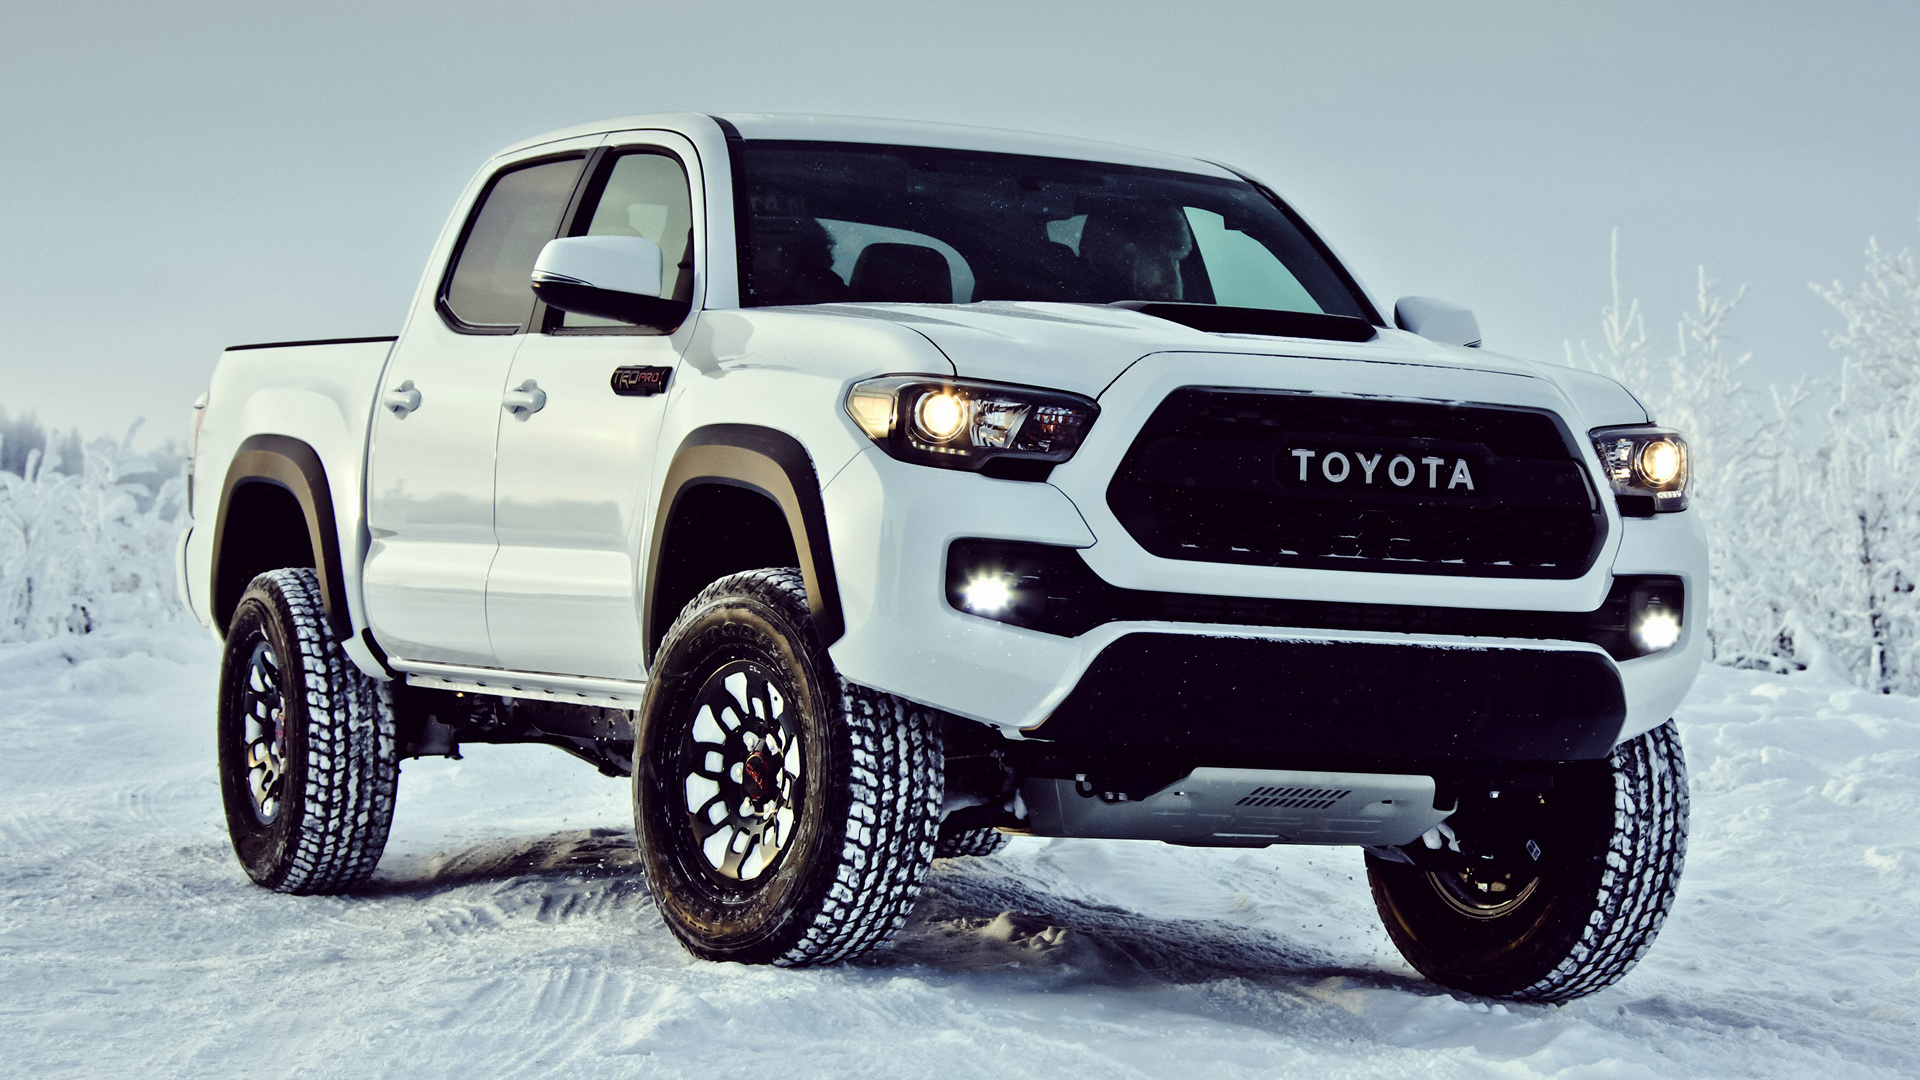 2017 Toyota Tacoma TRD Pro Double Cab - Wallpapers and HD ...